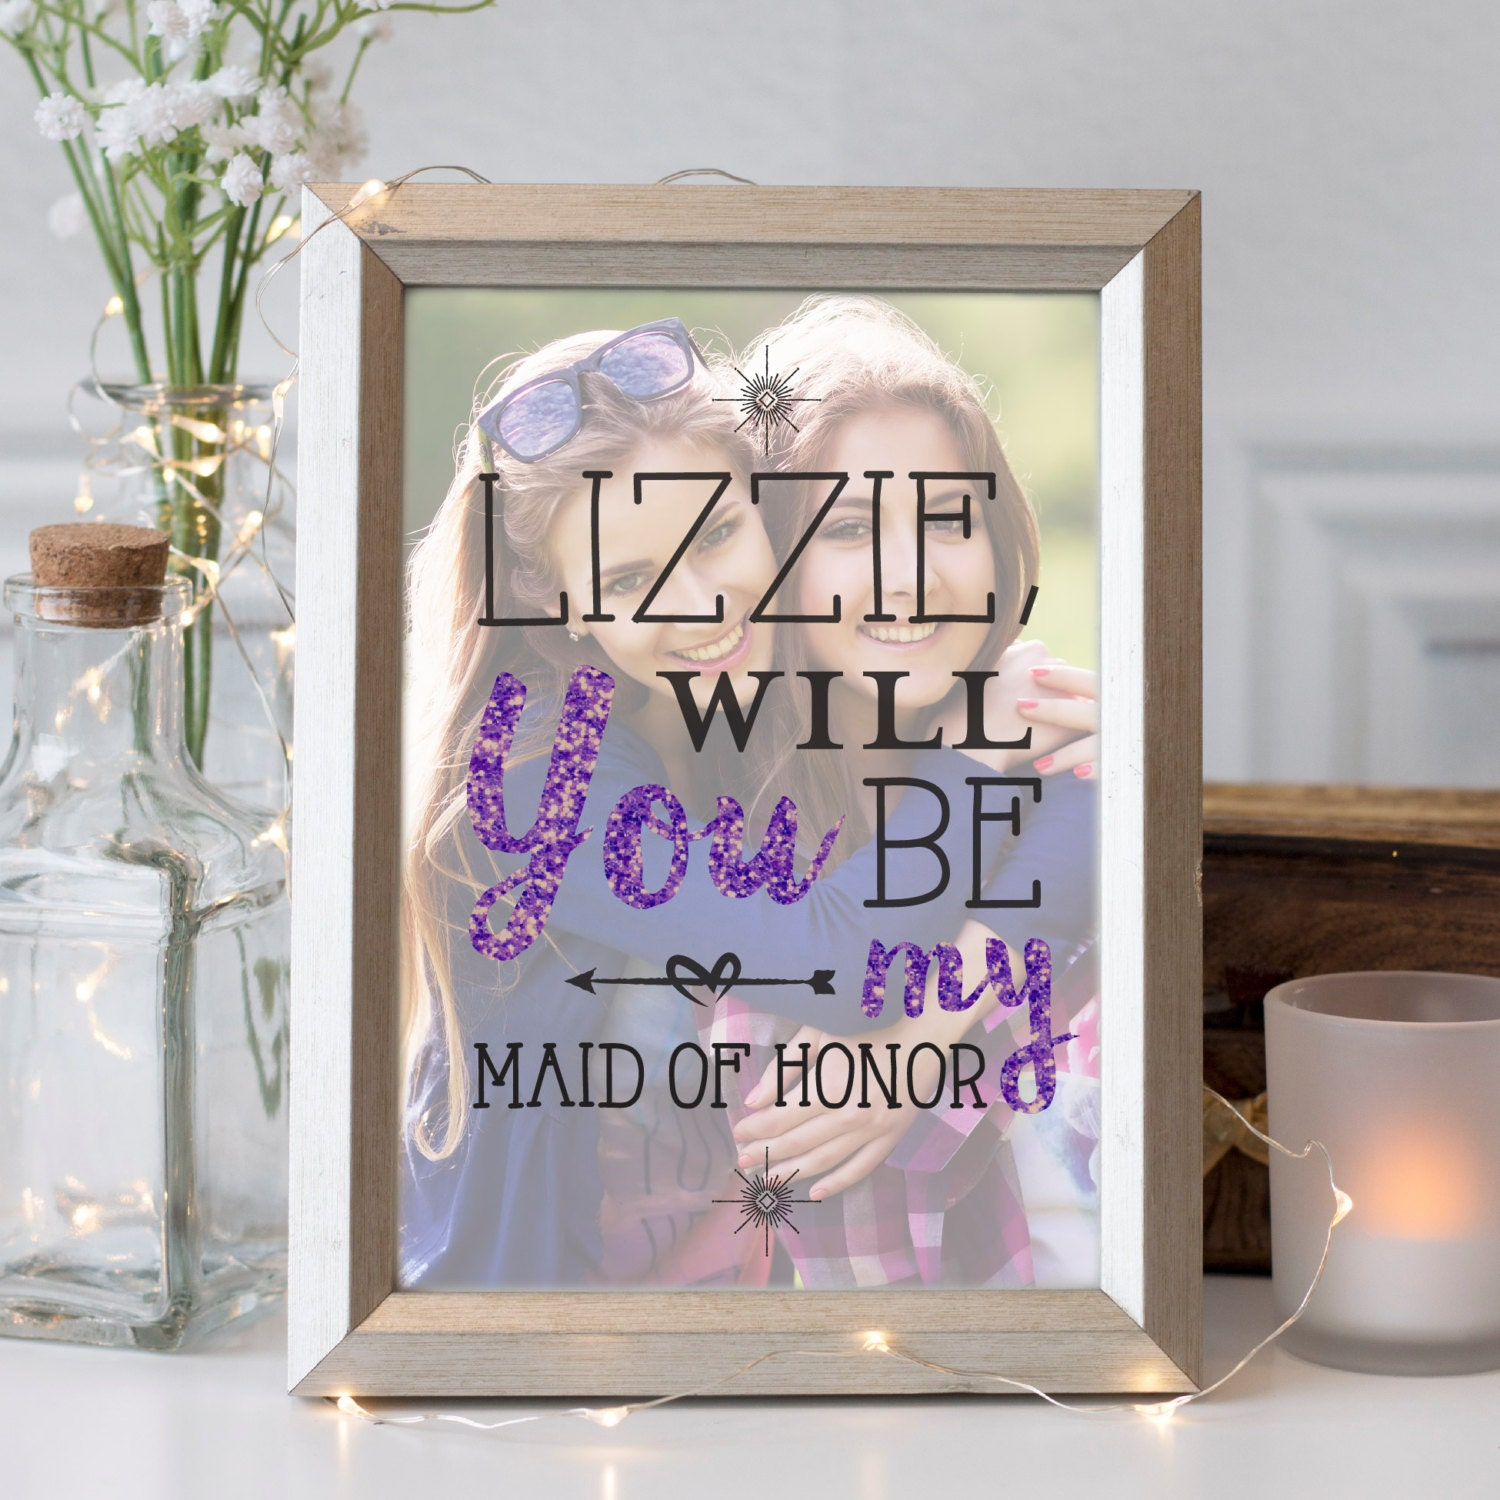 Maid Of Honor Proposal Gift Sister Gift Best Friend Photo